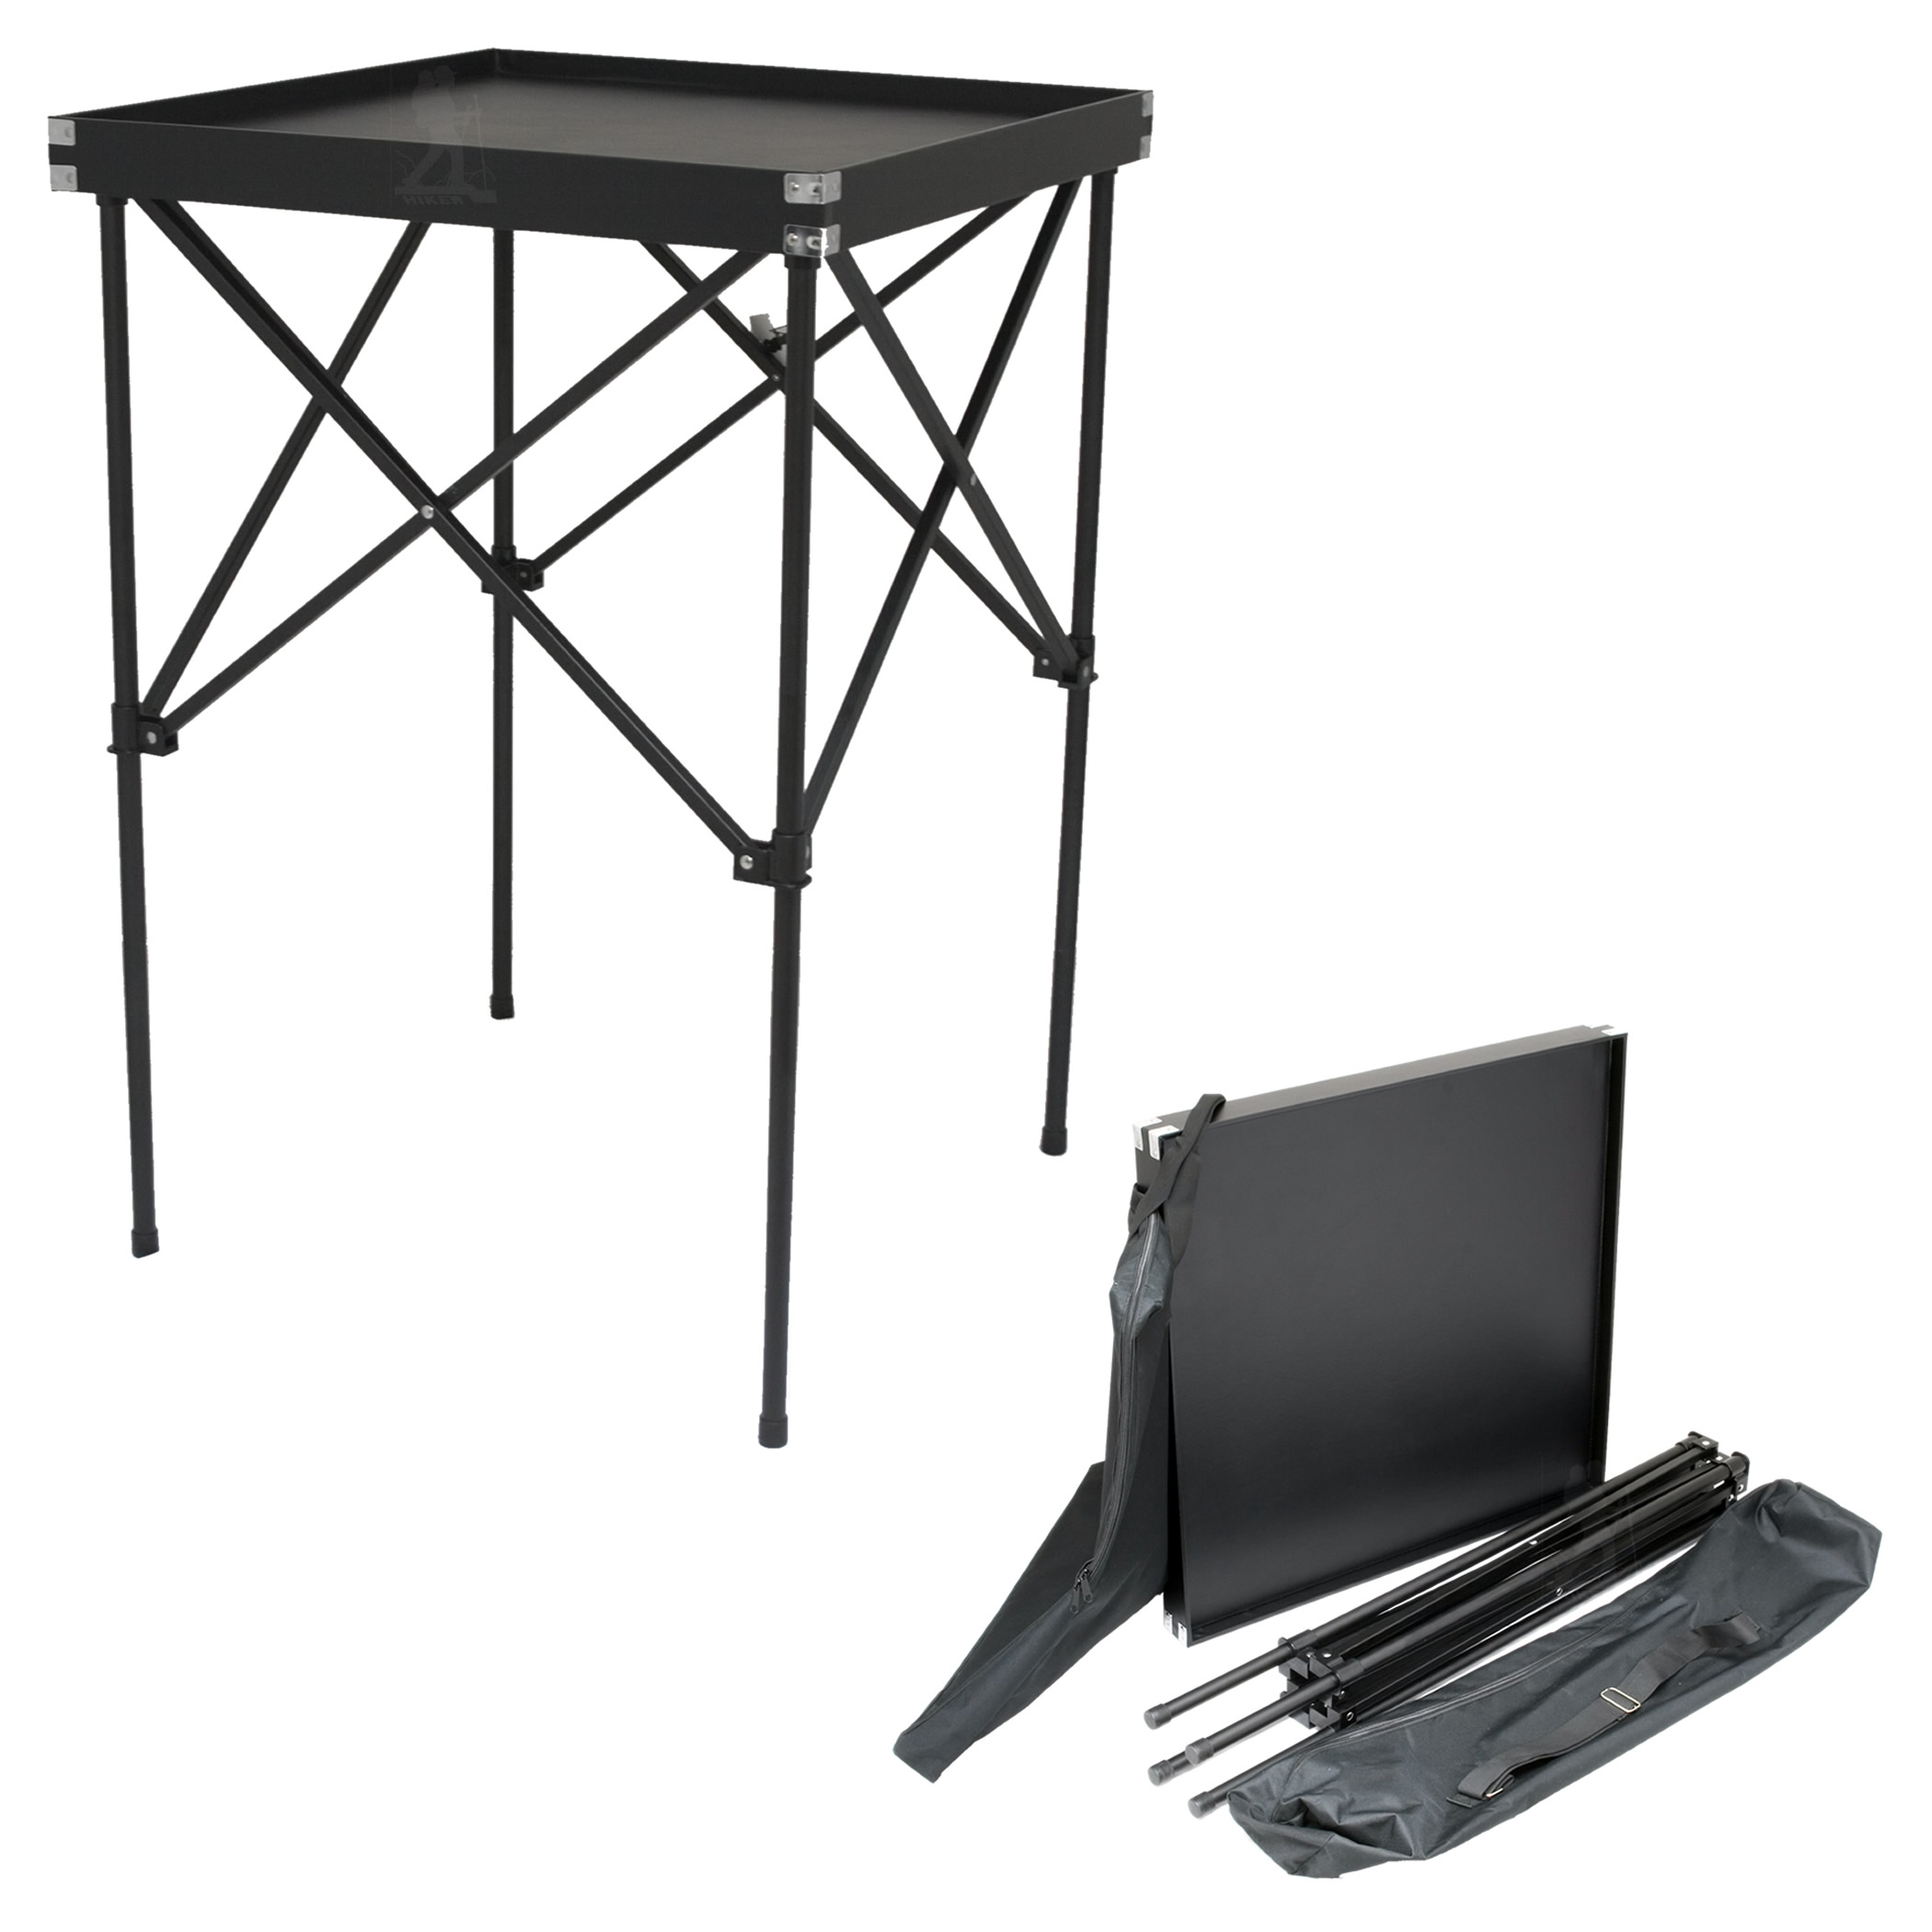 Hiker black portable makeup table stand free shipping for Table lipstick